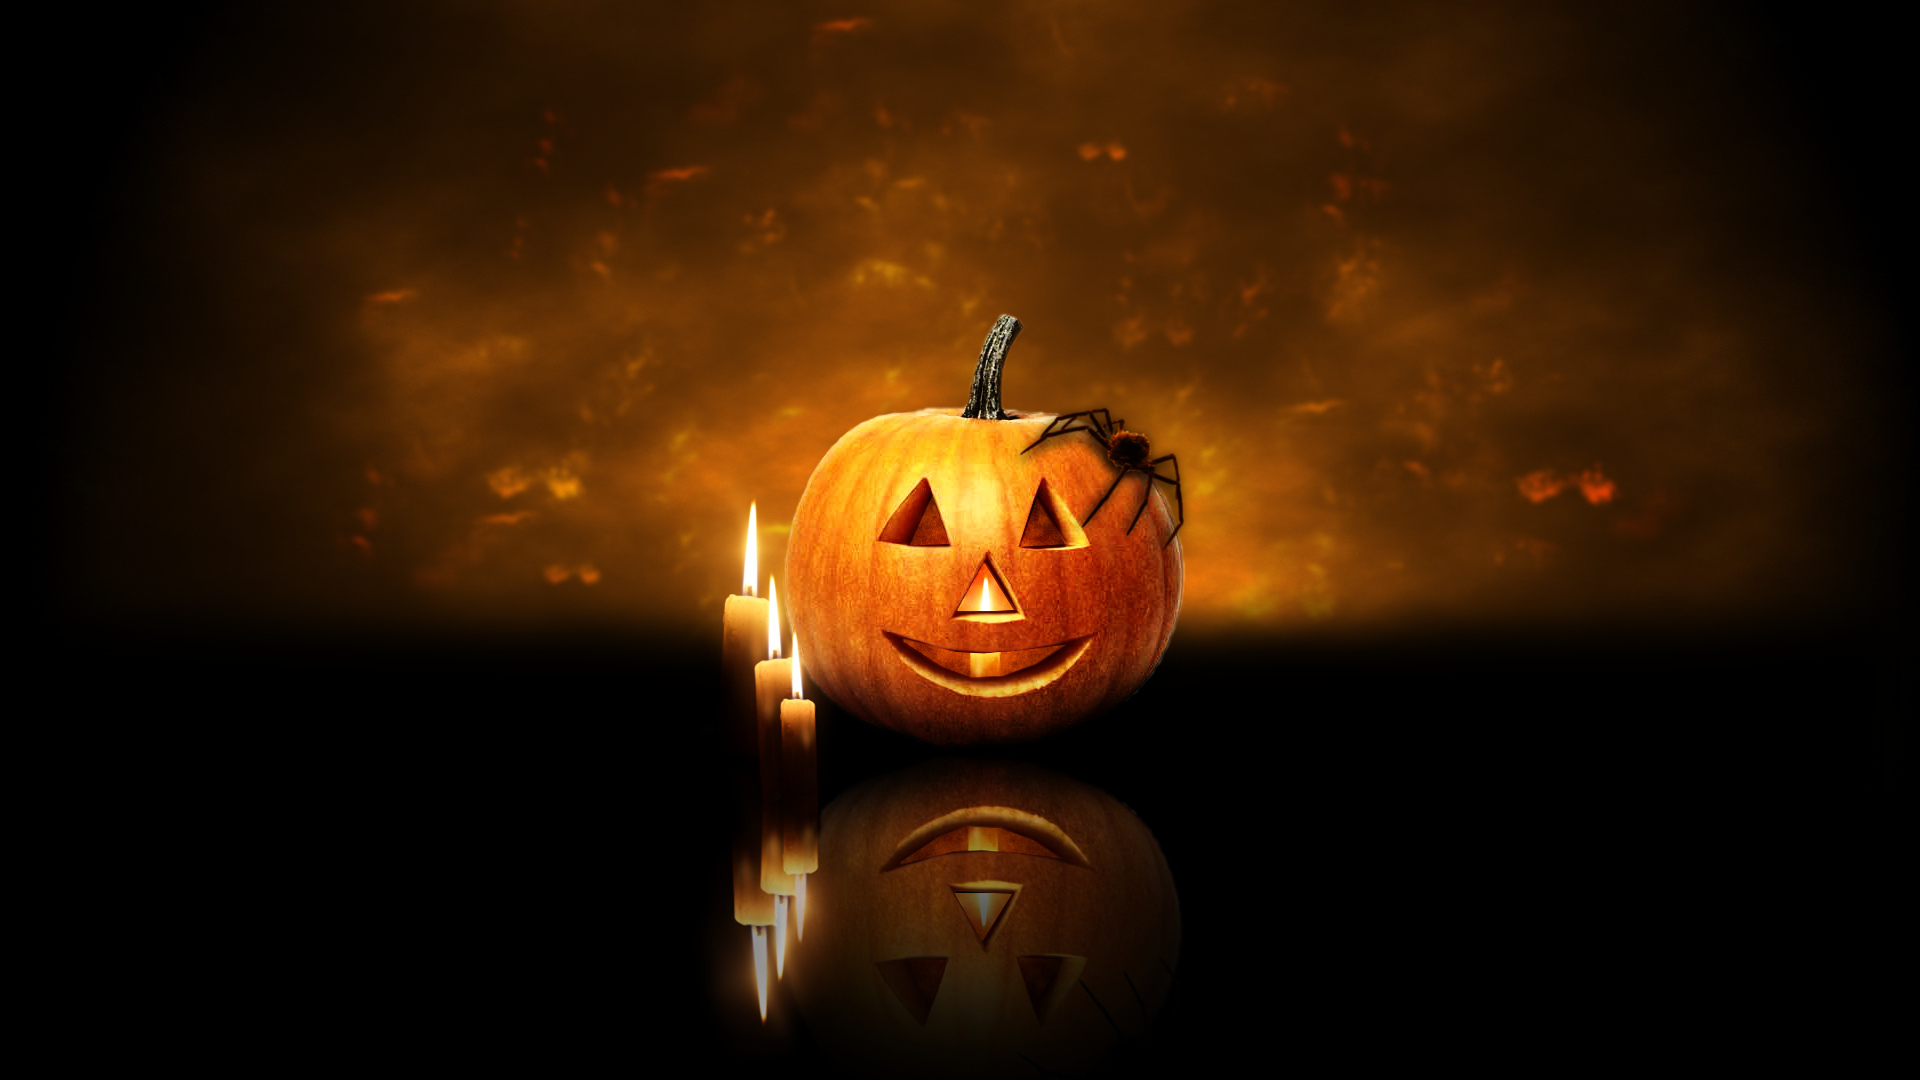 Halloween Pumpkin Candles 102.63 Kb